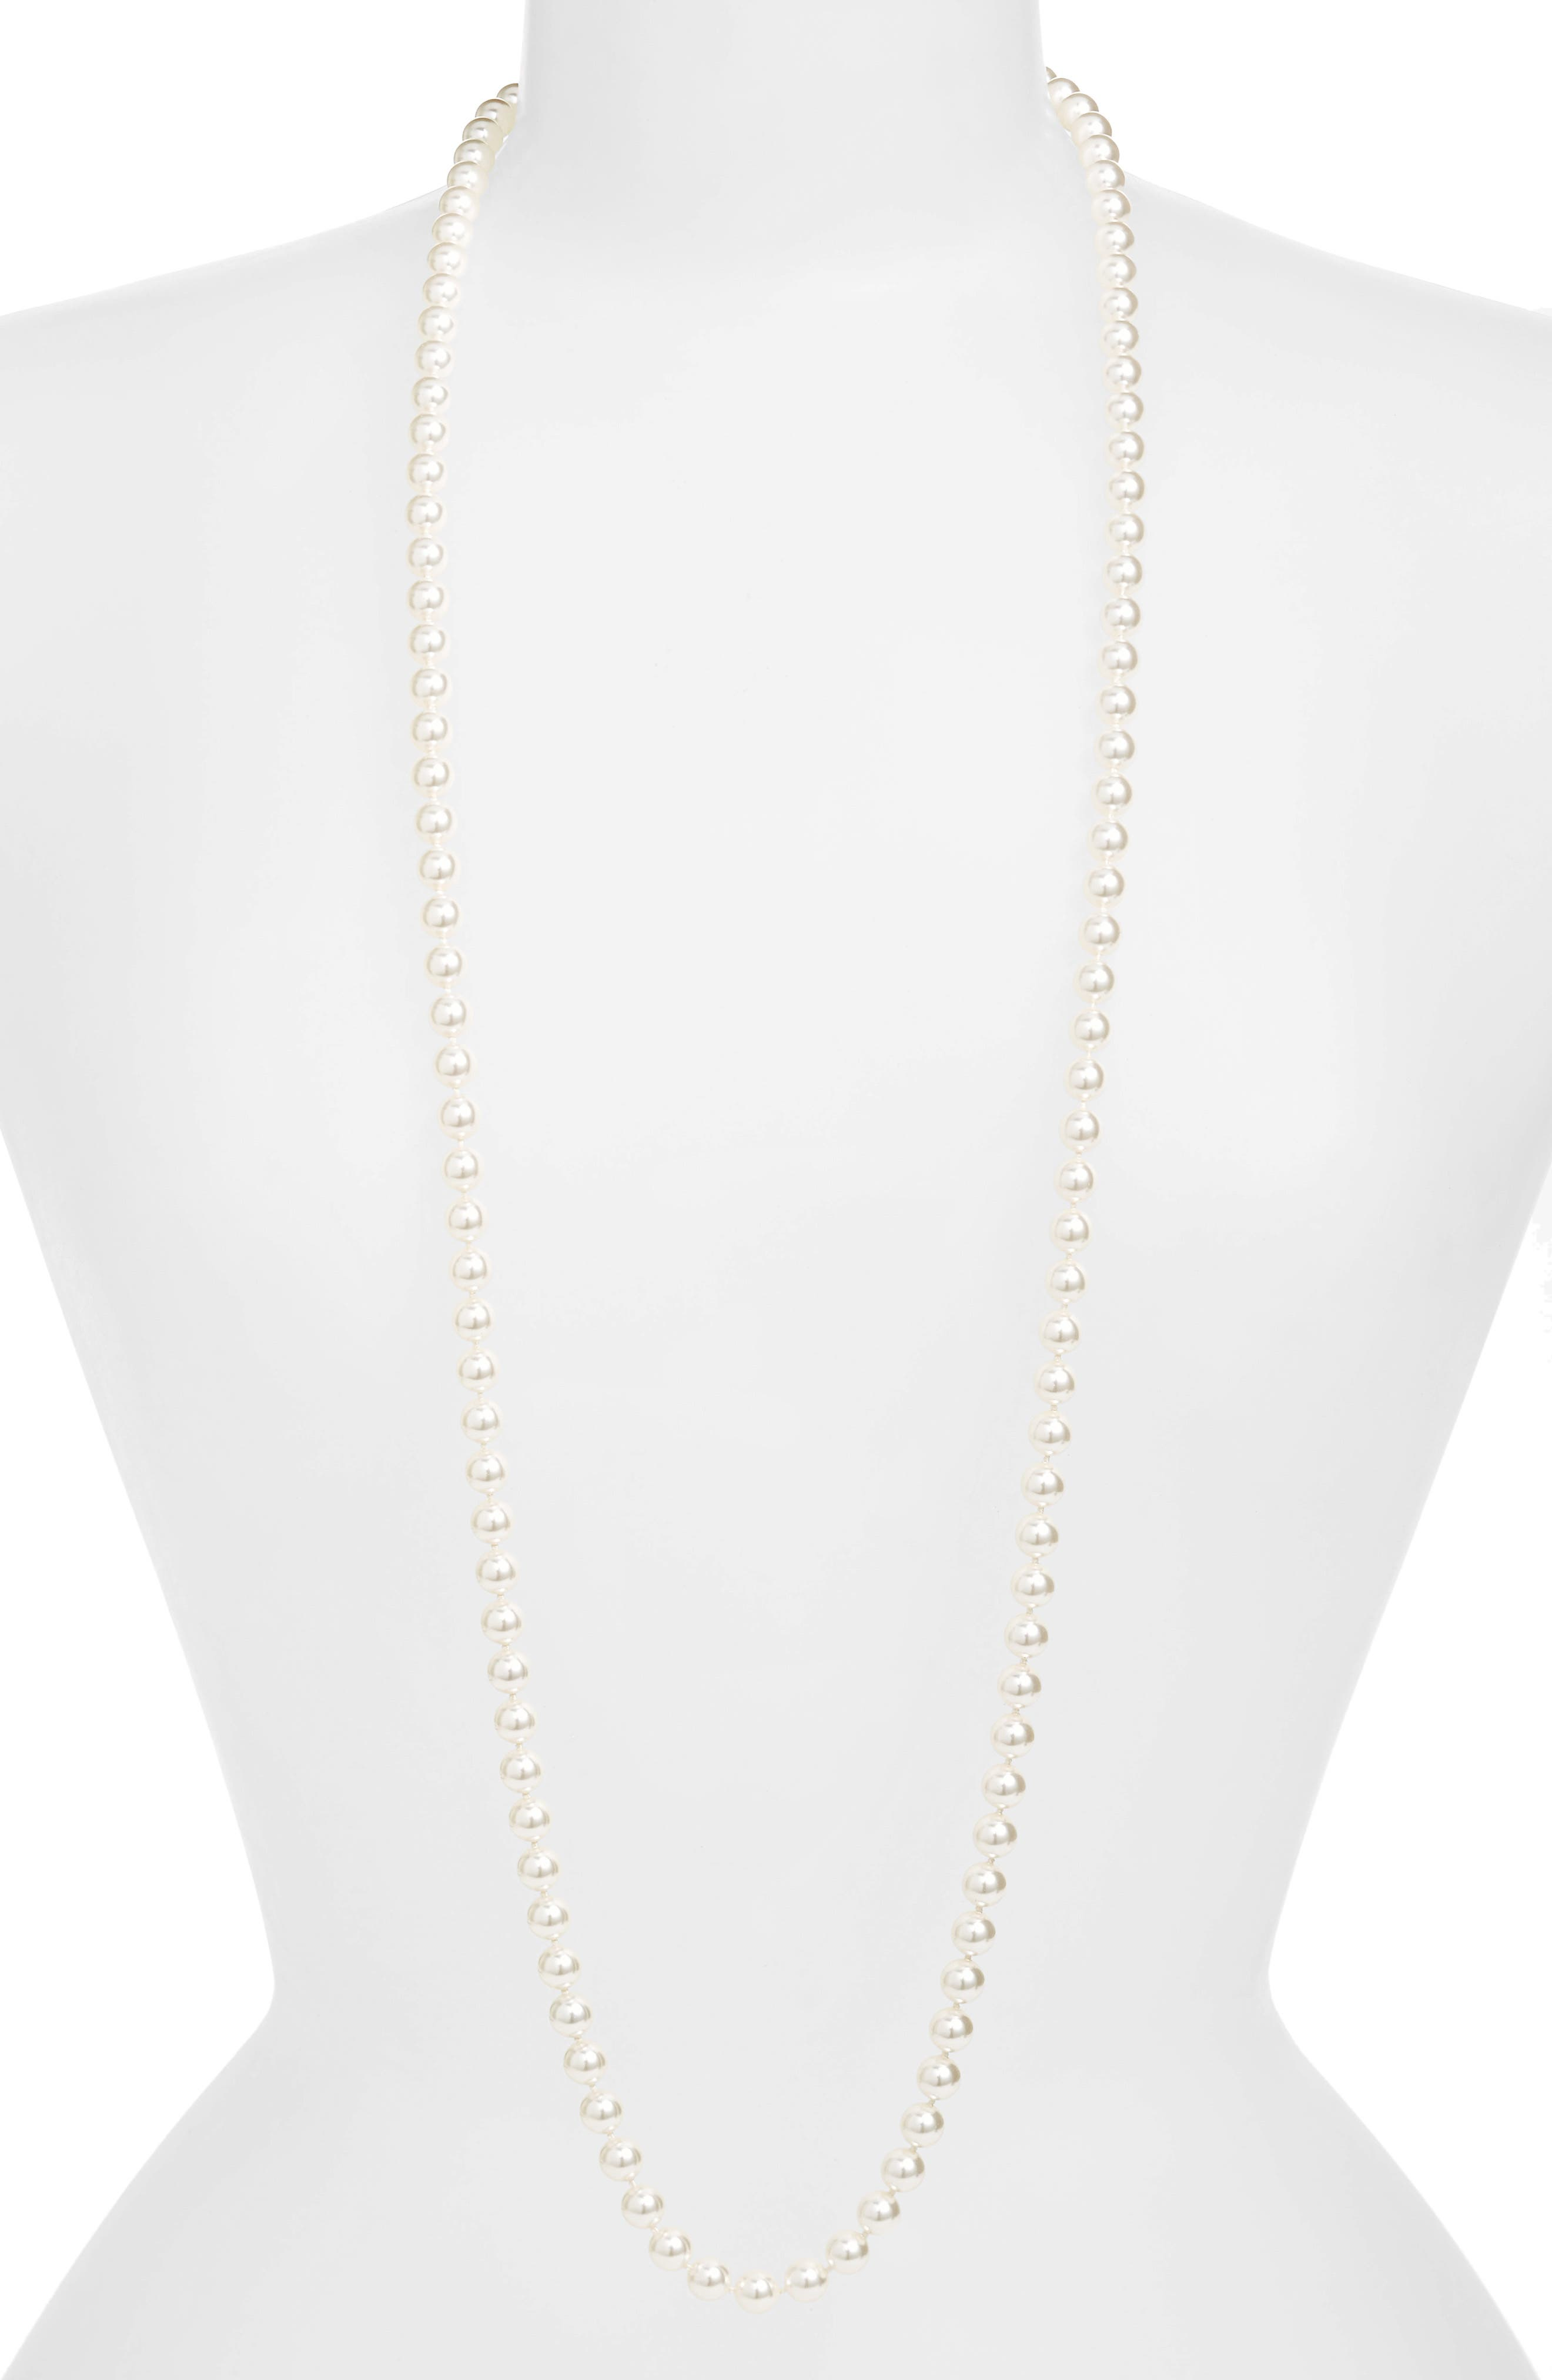 42-Inch Glass Pearl Strand Rope Necklace,                             Main thumbnail 1, color,                             WHITE PEARL